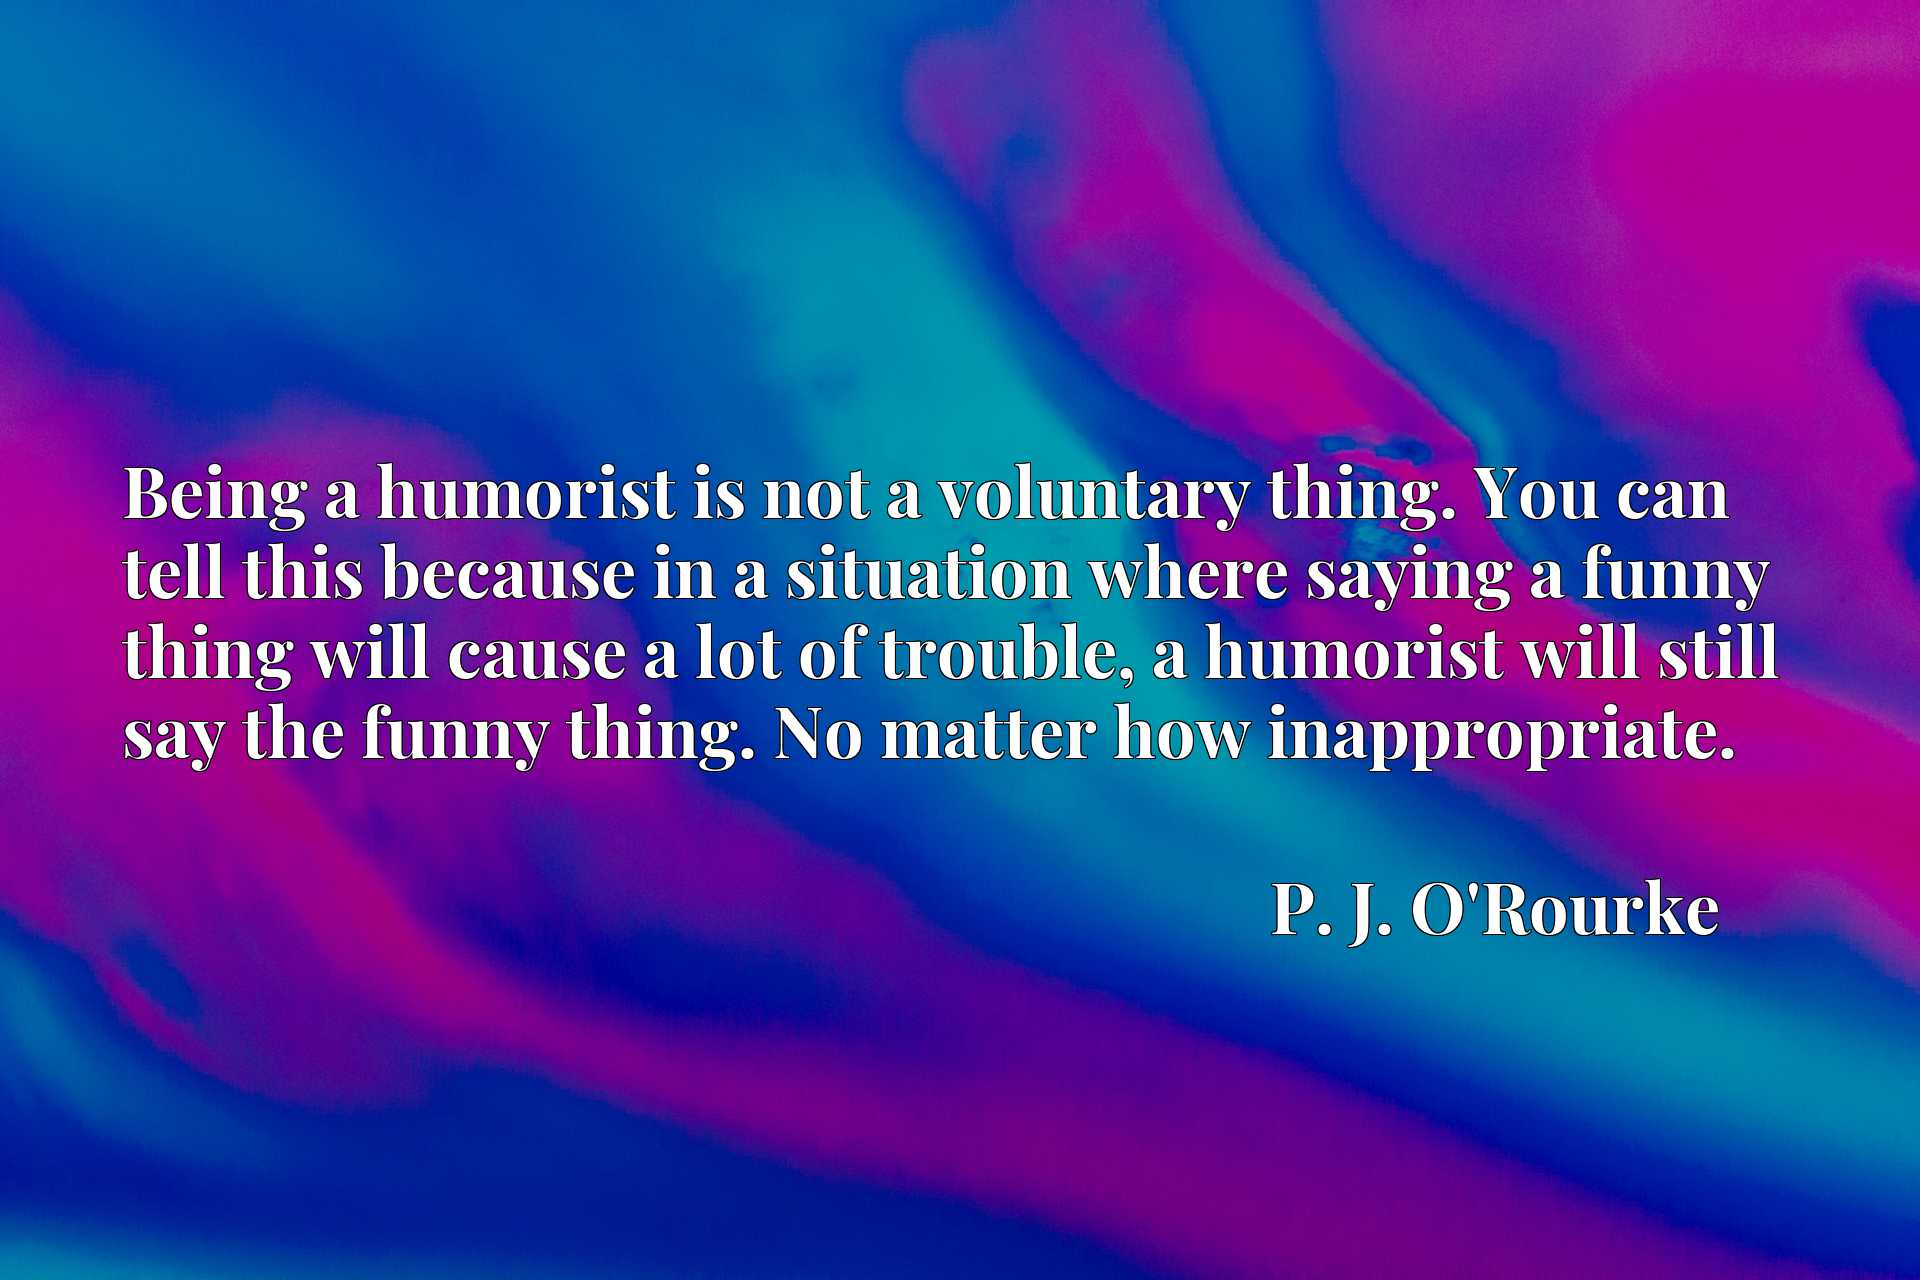 Being a humorist is not a voluntary thing. You can tell this because in a situation where saying a funny thing will cause a lot of trouble, a humorist will still say the funny thing. No matter how inappropriate.